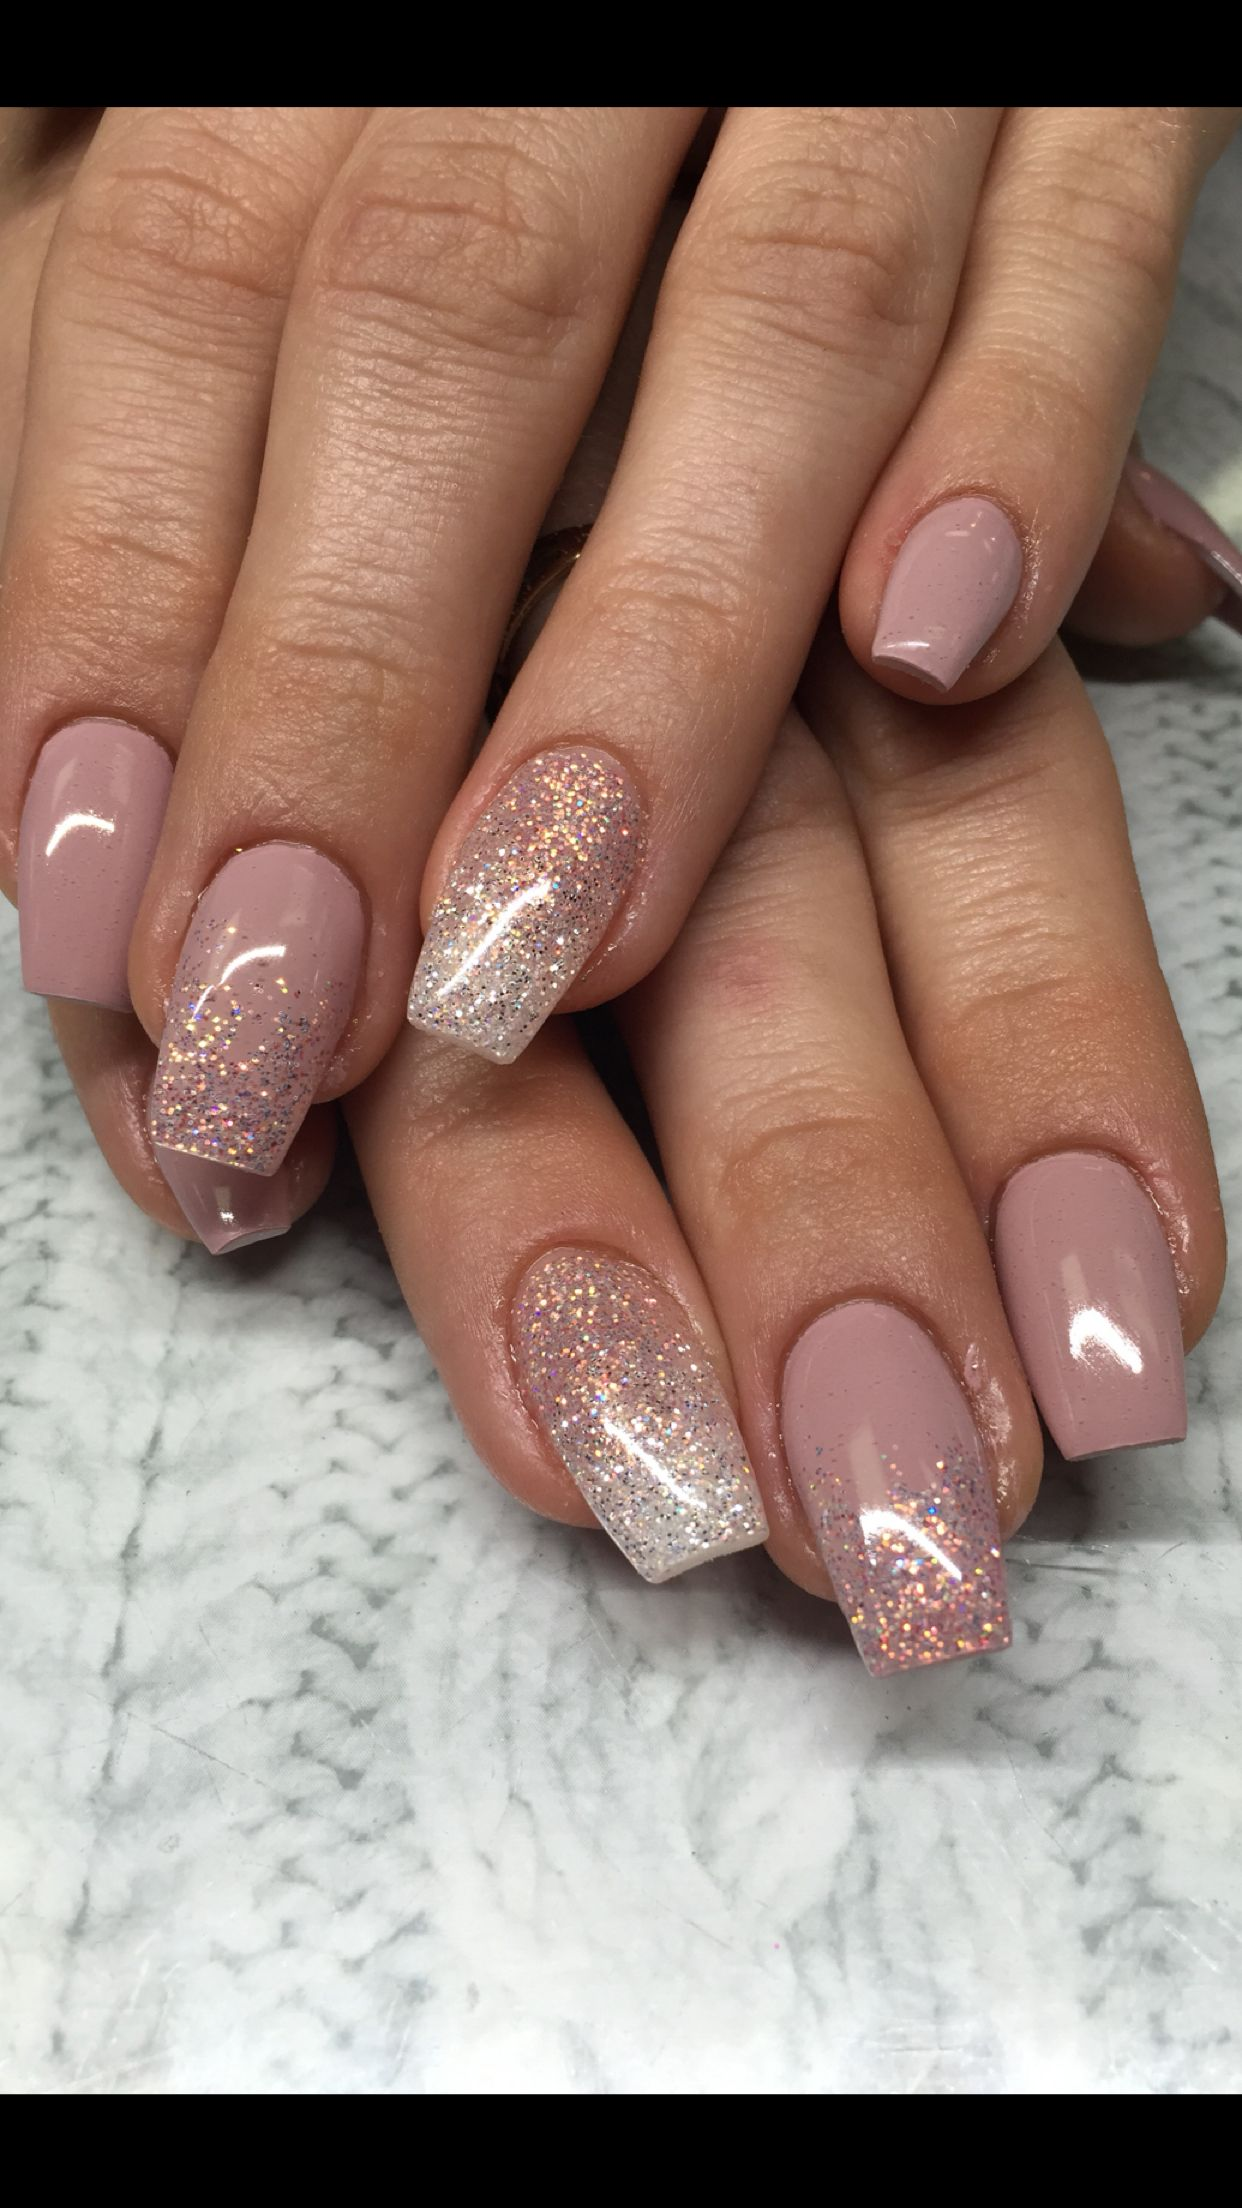 Hard Gel Nails Ballerina Coffin Light Elegance Your Churn With Sweet Nothing And Diamond Hard Gel Nails Gel Nails Trendy Nails